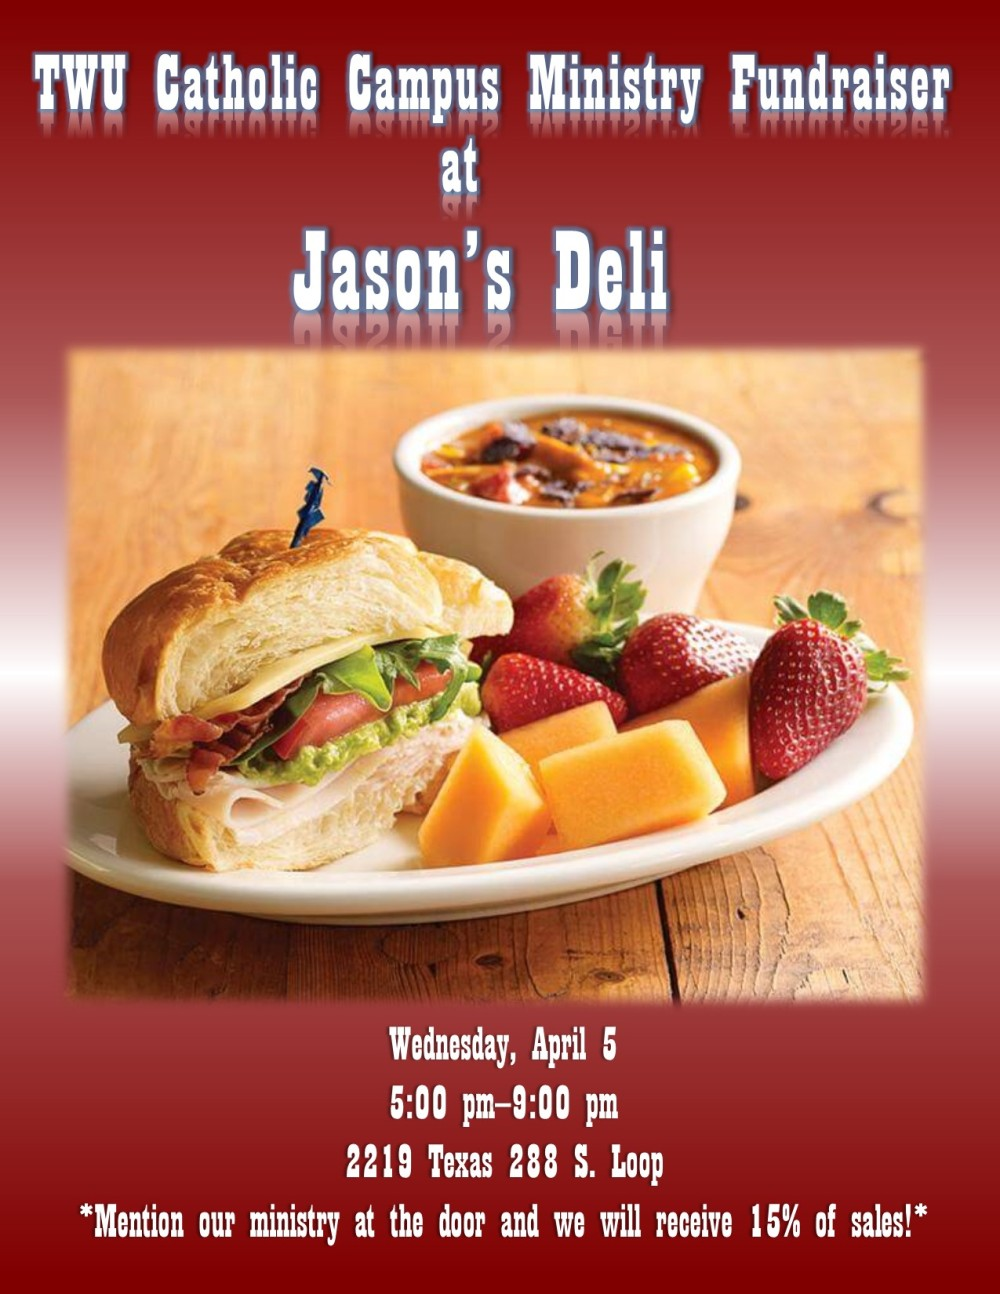 Jason's Deli Fundraiser Flyer